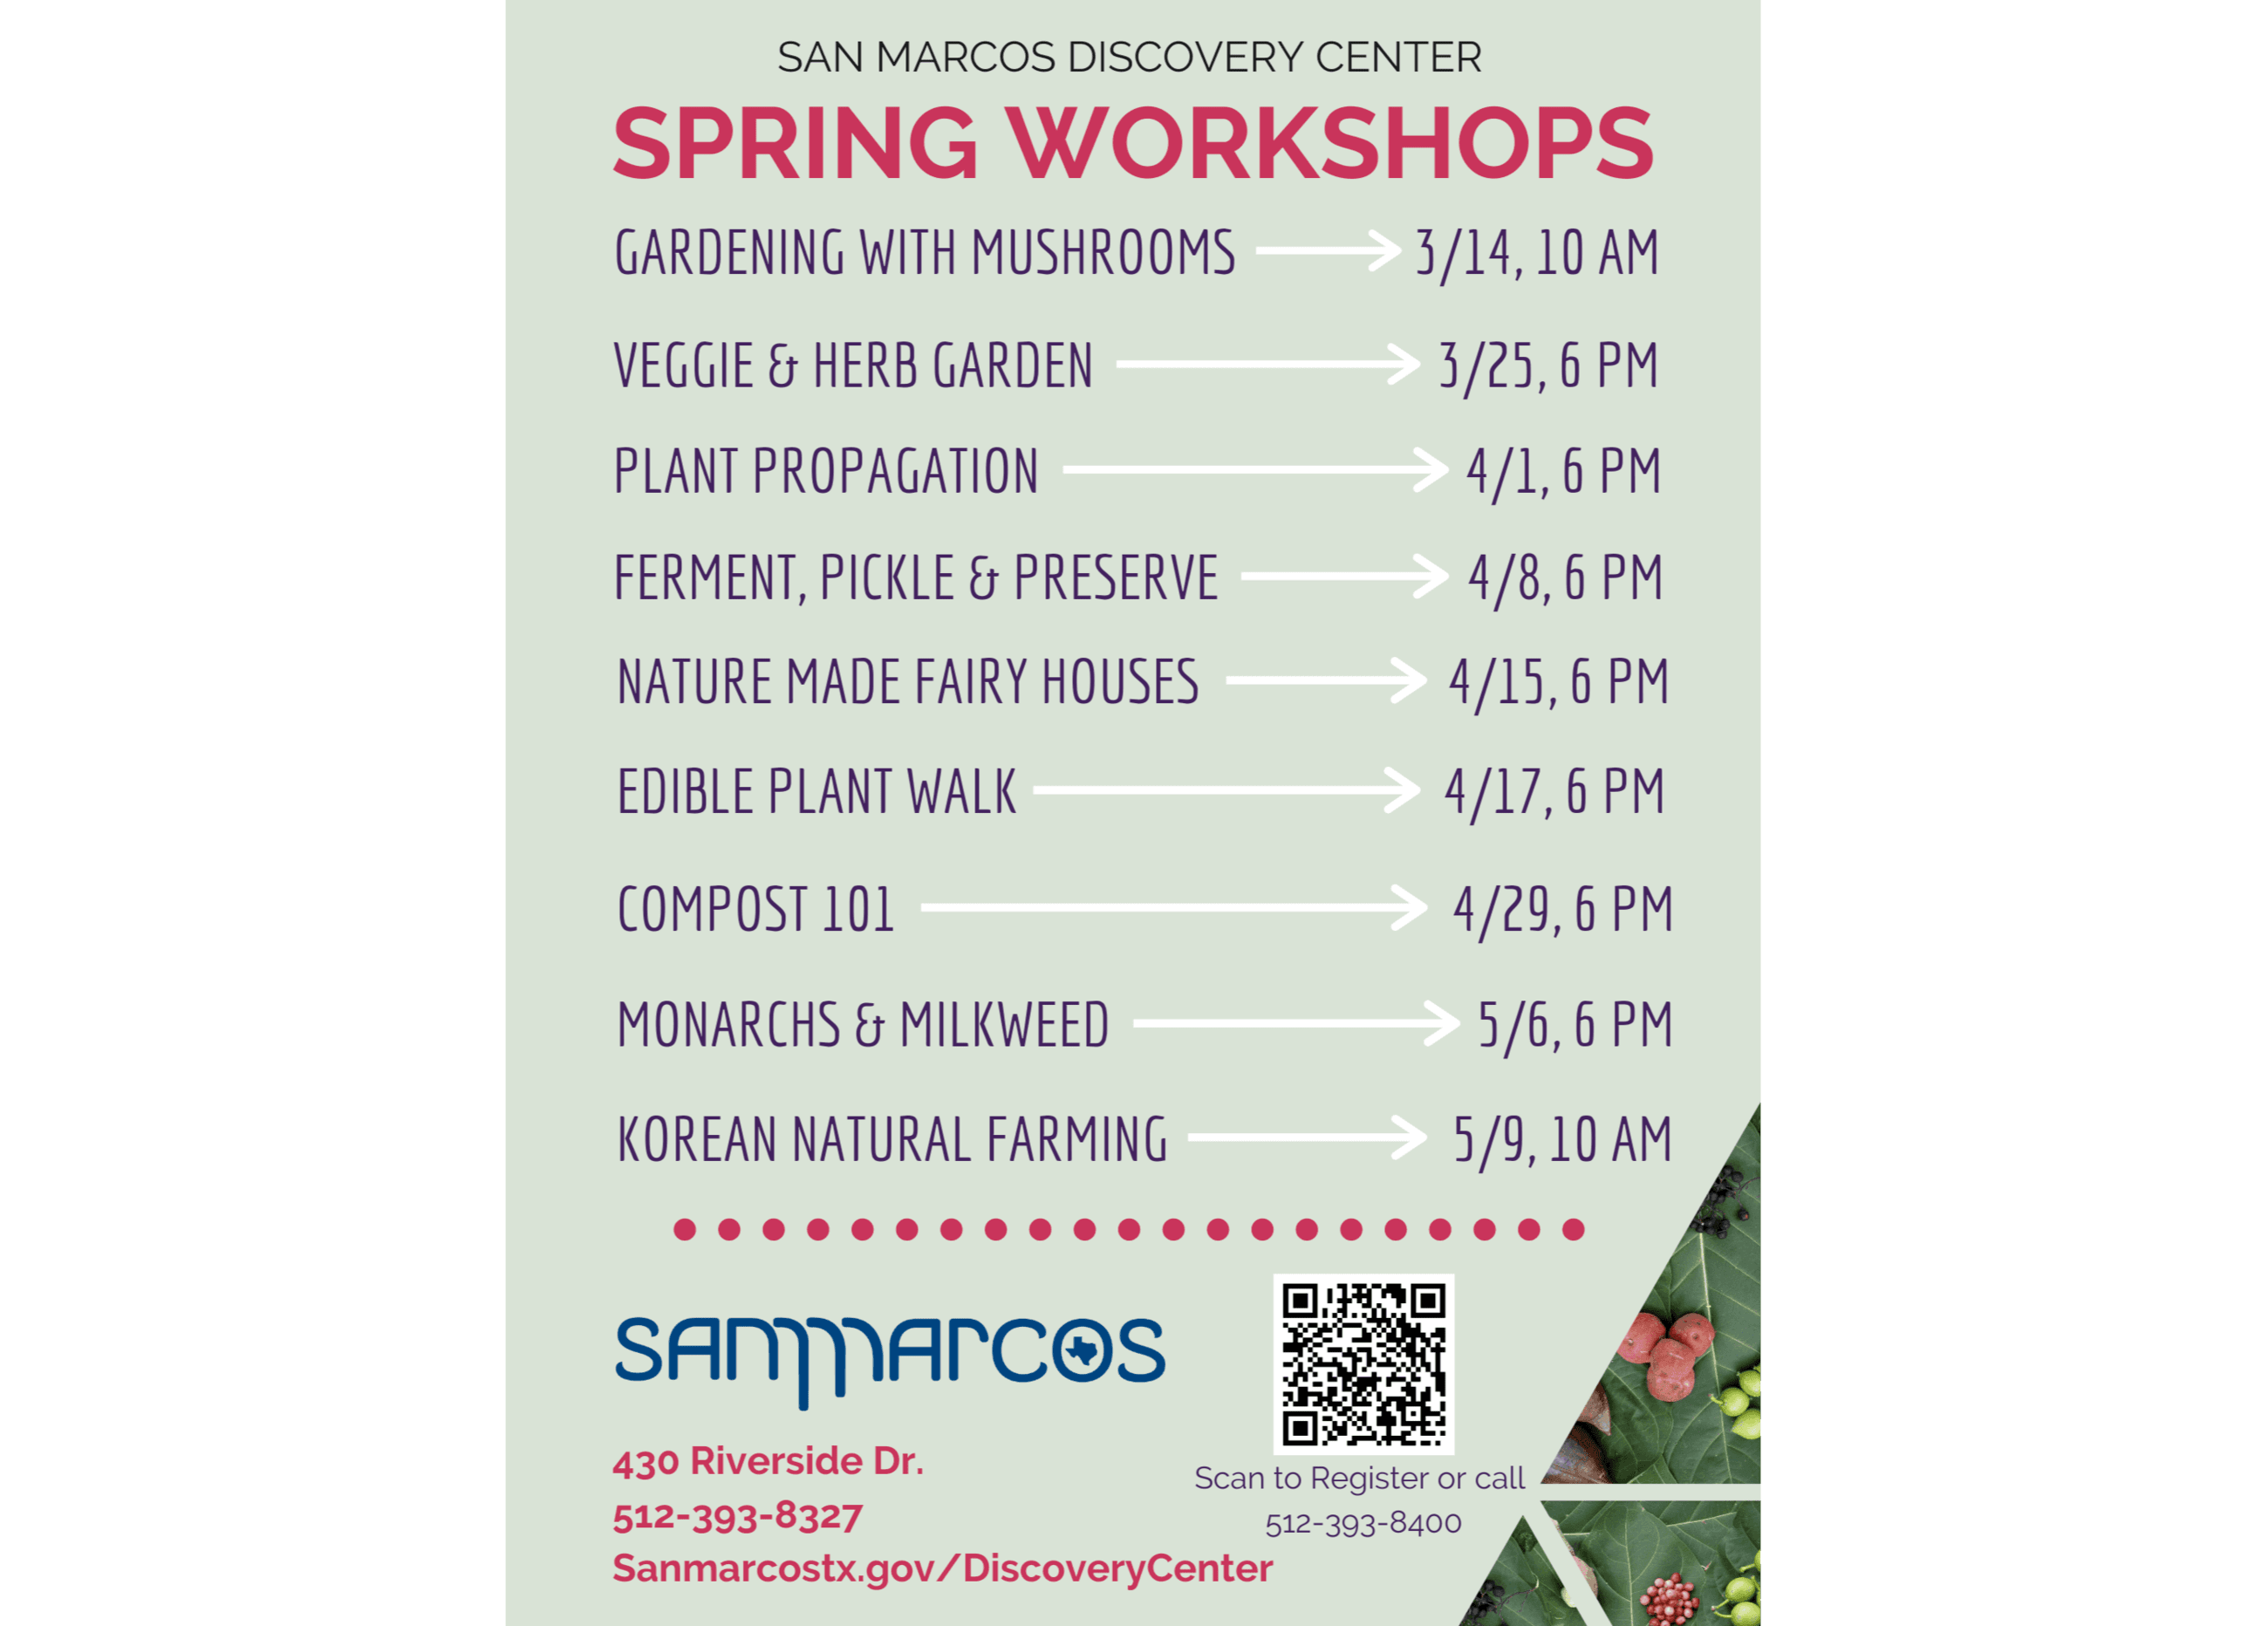 Graphic with workshops listed